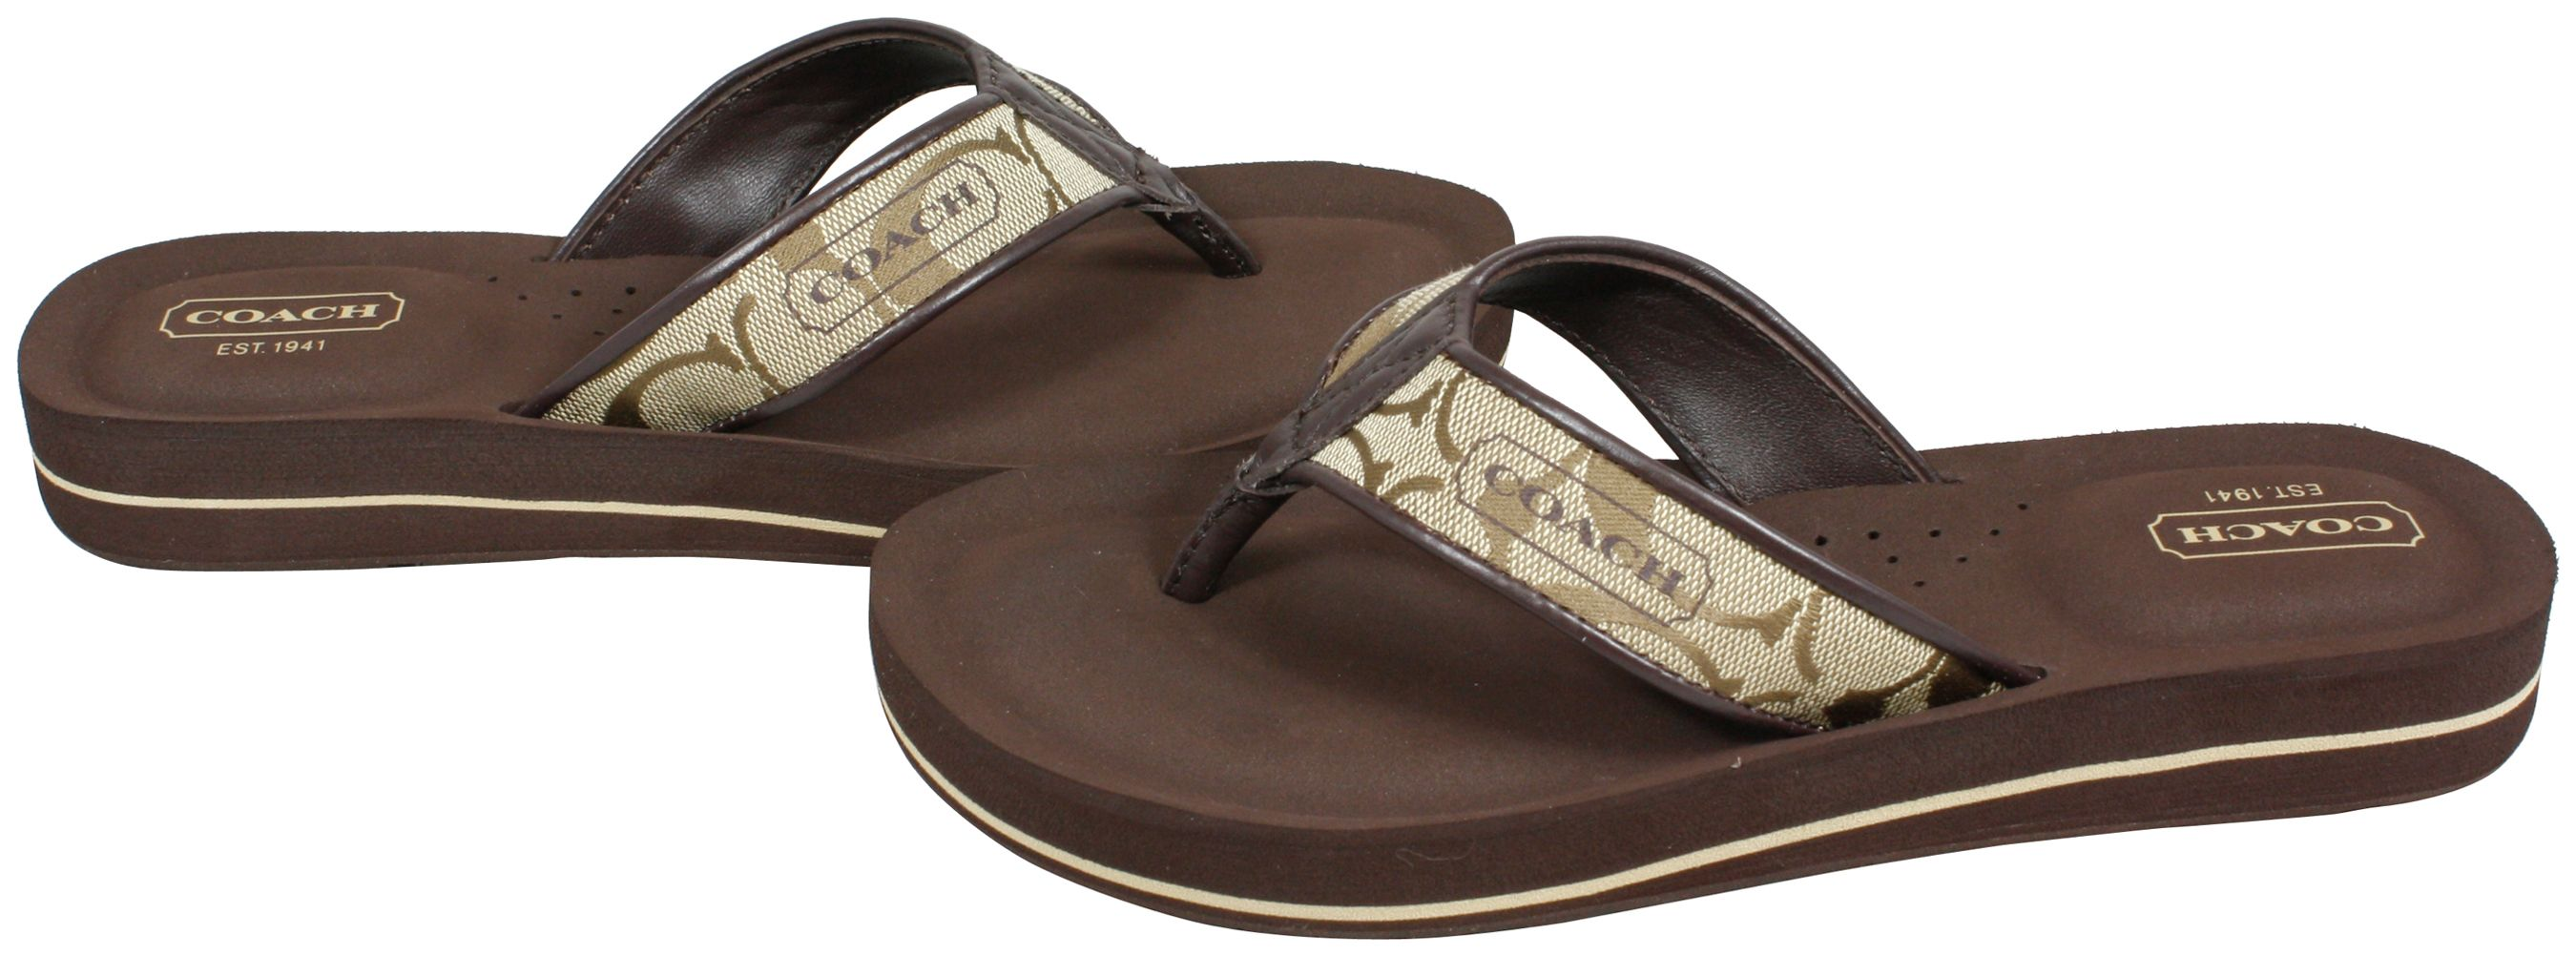 47f64822c5d Coach Signature Jolie Flip Flops Sandals Khaki Chestnut Shoes 11 New ...